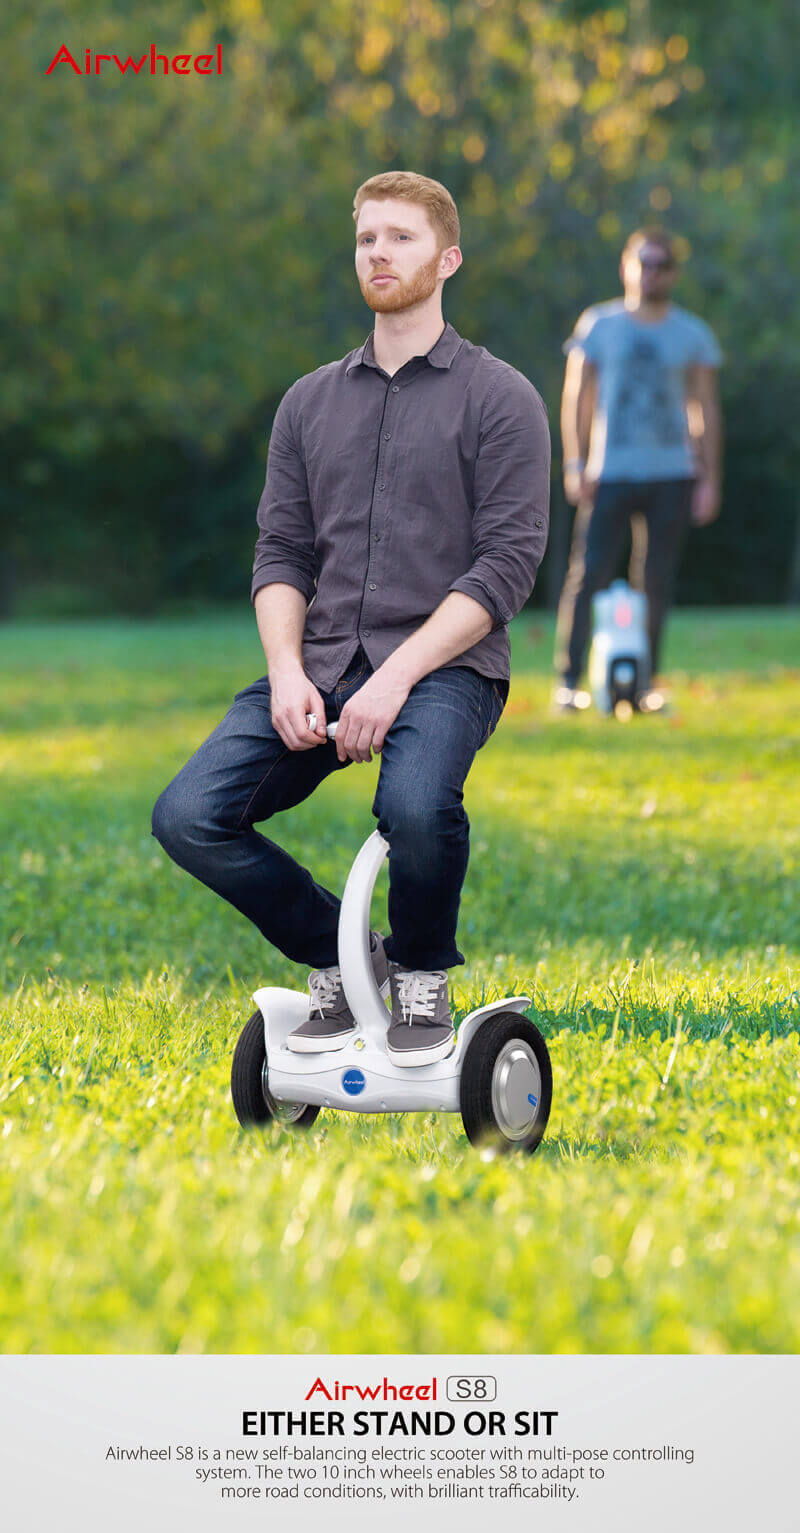 Airwheel two-wheeled intelligent scooter S8